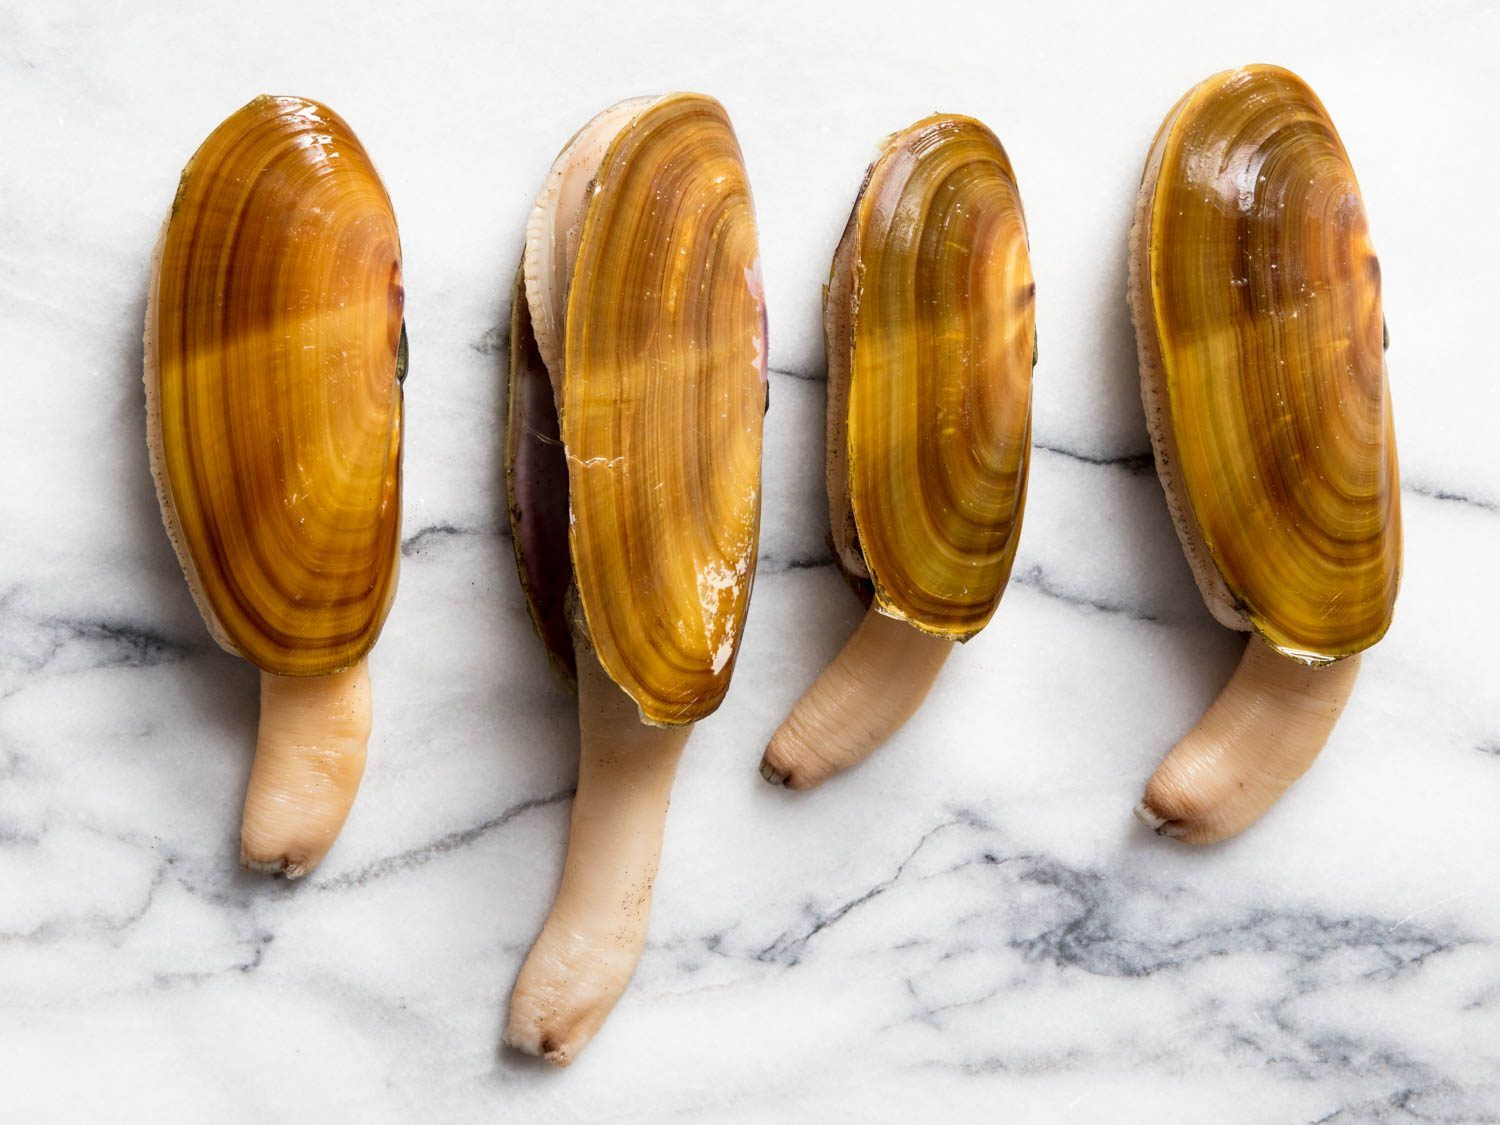 Pacific Razor Clams How to Catch, Clean, and Cook Them